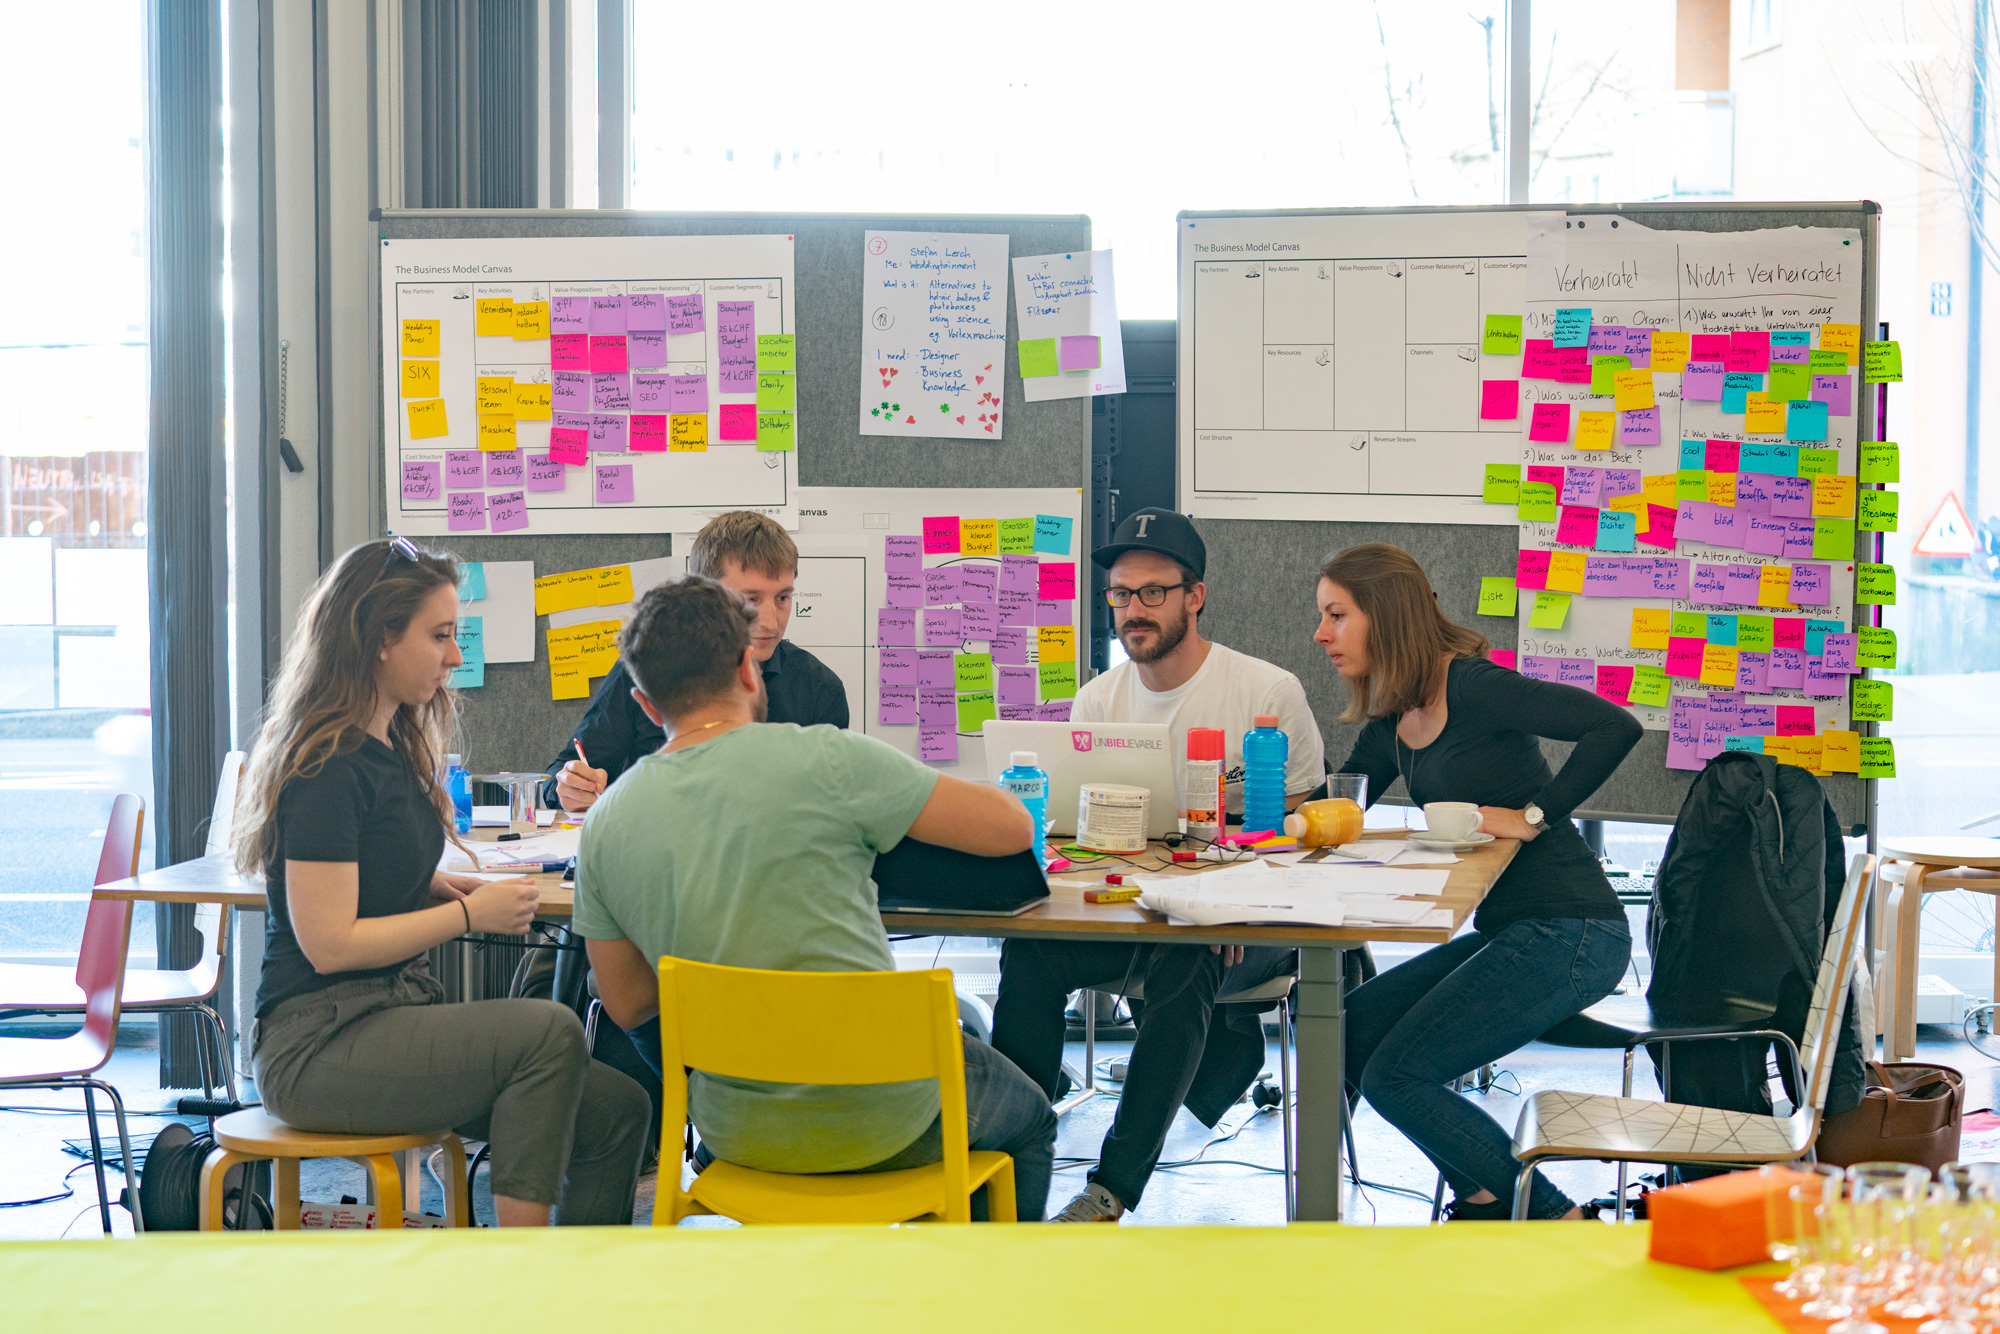 With methods like design thinking we find the right solution together.